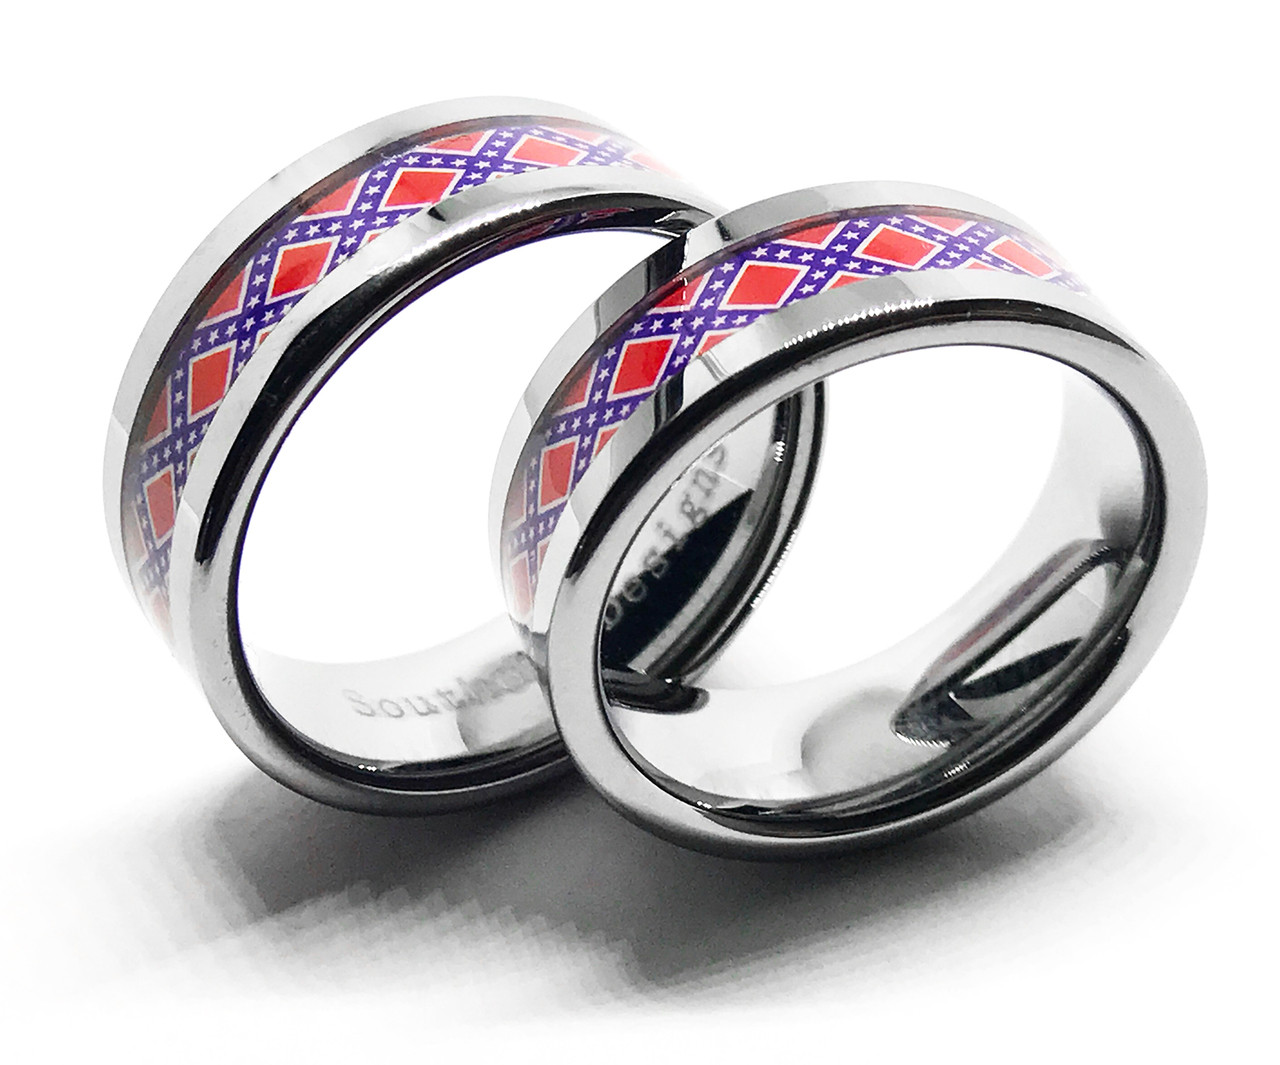 Silver Couples Confederate Flag Ring Set  His And Hers. Oversized Wedding Rings. Bracelet Wedding Rings. Jewelry Engagement Rings. Bad Men Wedding Engagement Rings. Laurel Wedding Rings. Nurse Wedding Rings. 2.15 Carat Wedding Rings. Turquoise Accent Engagement Rings